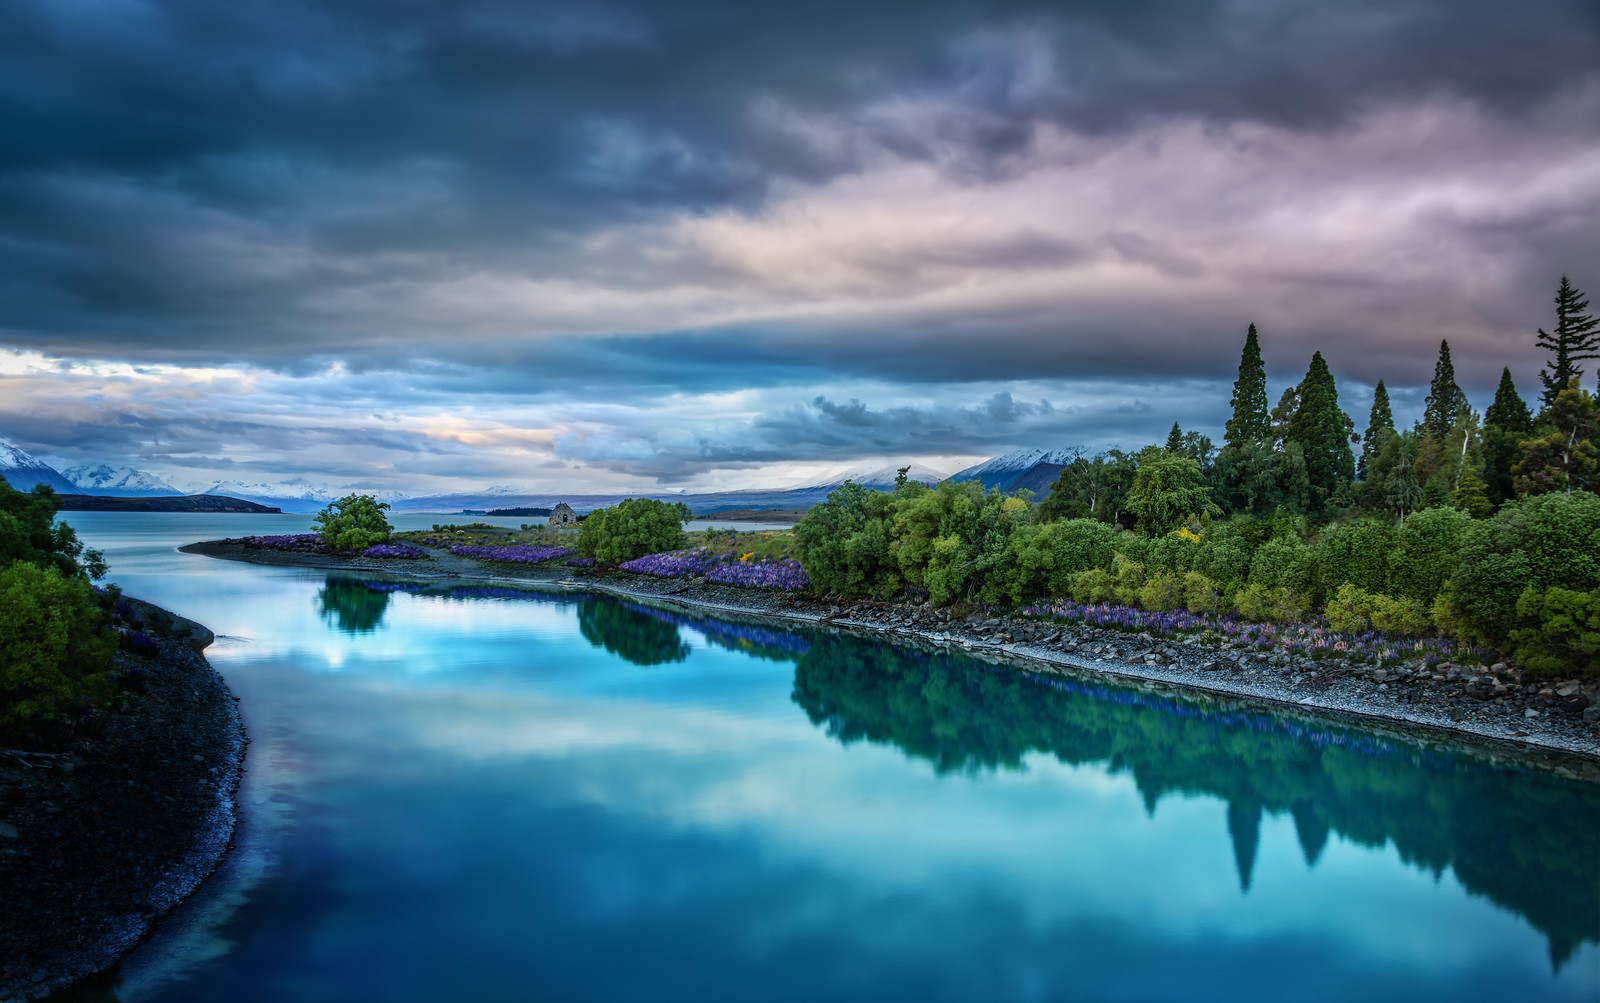 Evening on the blue Lake Tekapo